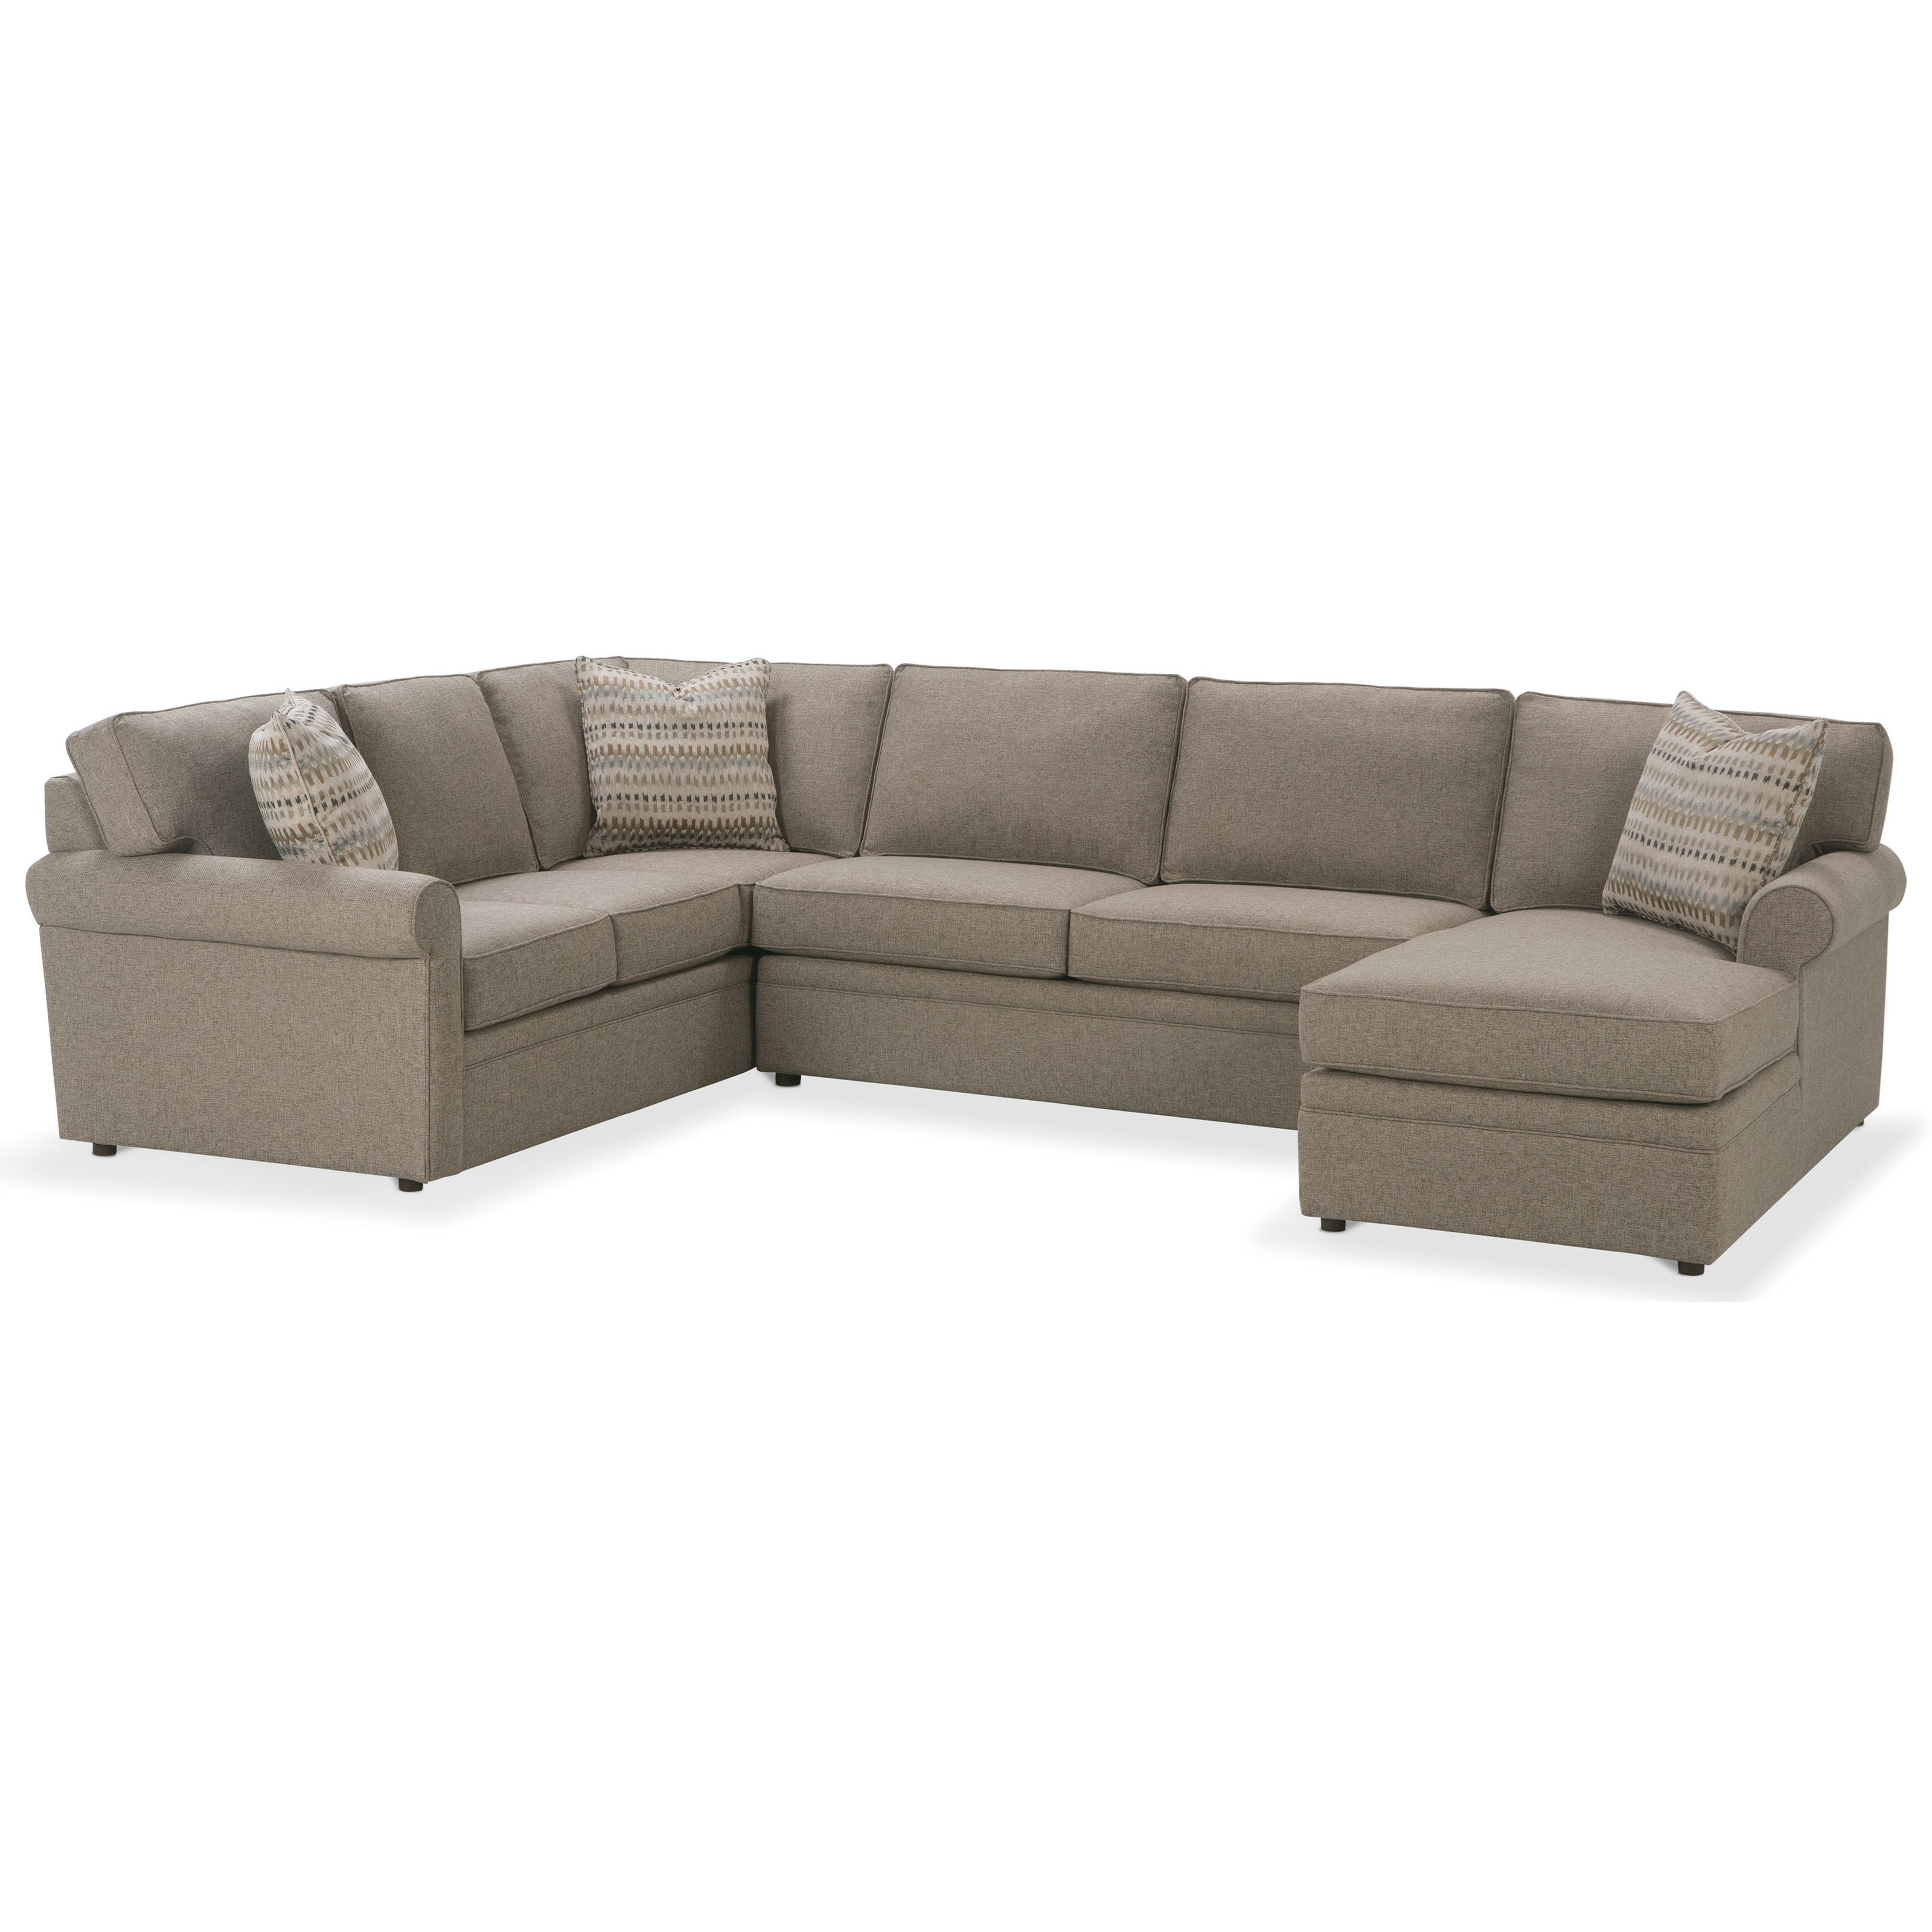 Rowe Brentwood Transitional Sectional Sofa with Chaise - Baeru0027s Furniture - Sectional Sofas  sc 1 st  Baeru0027s Furniture : rowe sectional sofas - Sectionals, Sofas & Couches